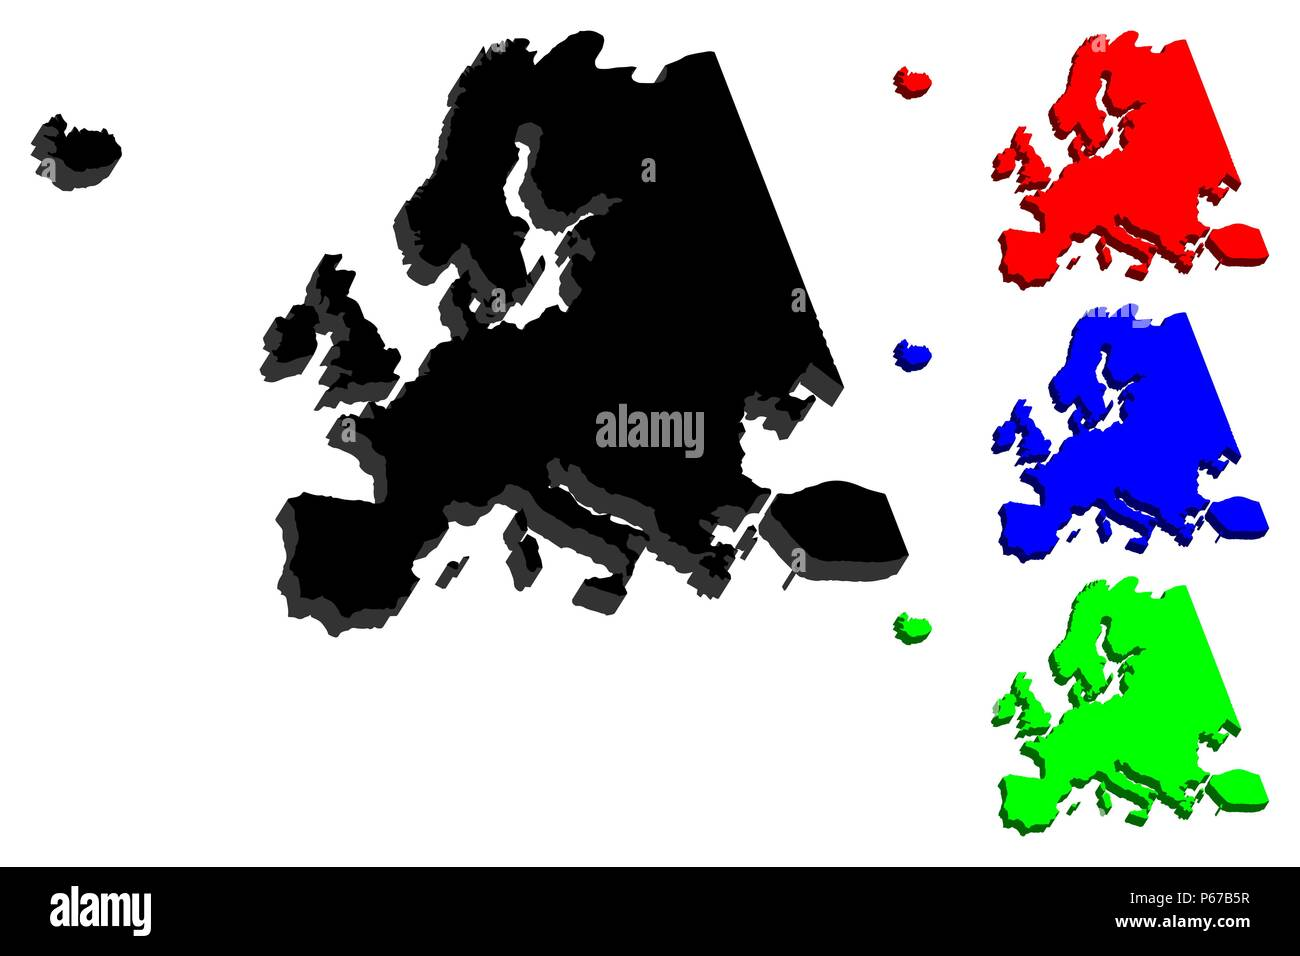 3D map of Europe continent - black, red, blue and green - vector illustration - Stock Image